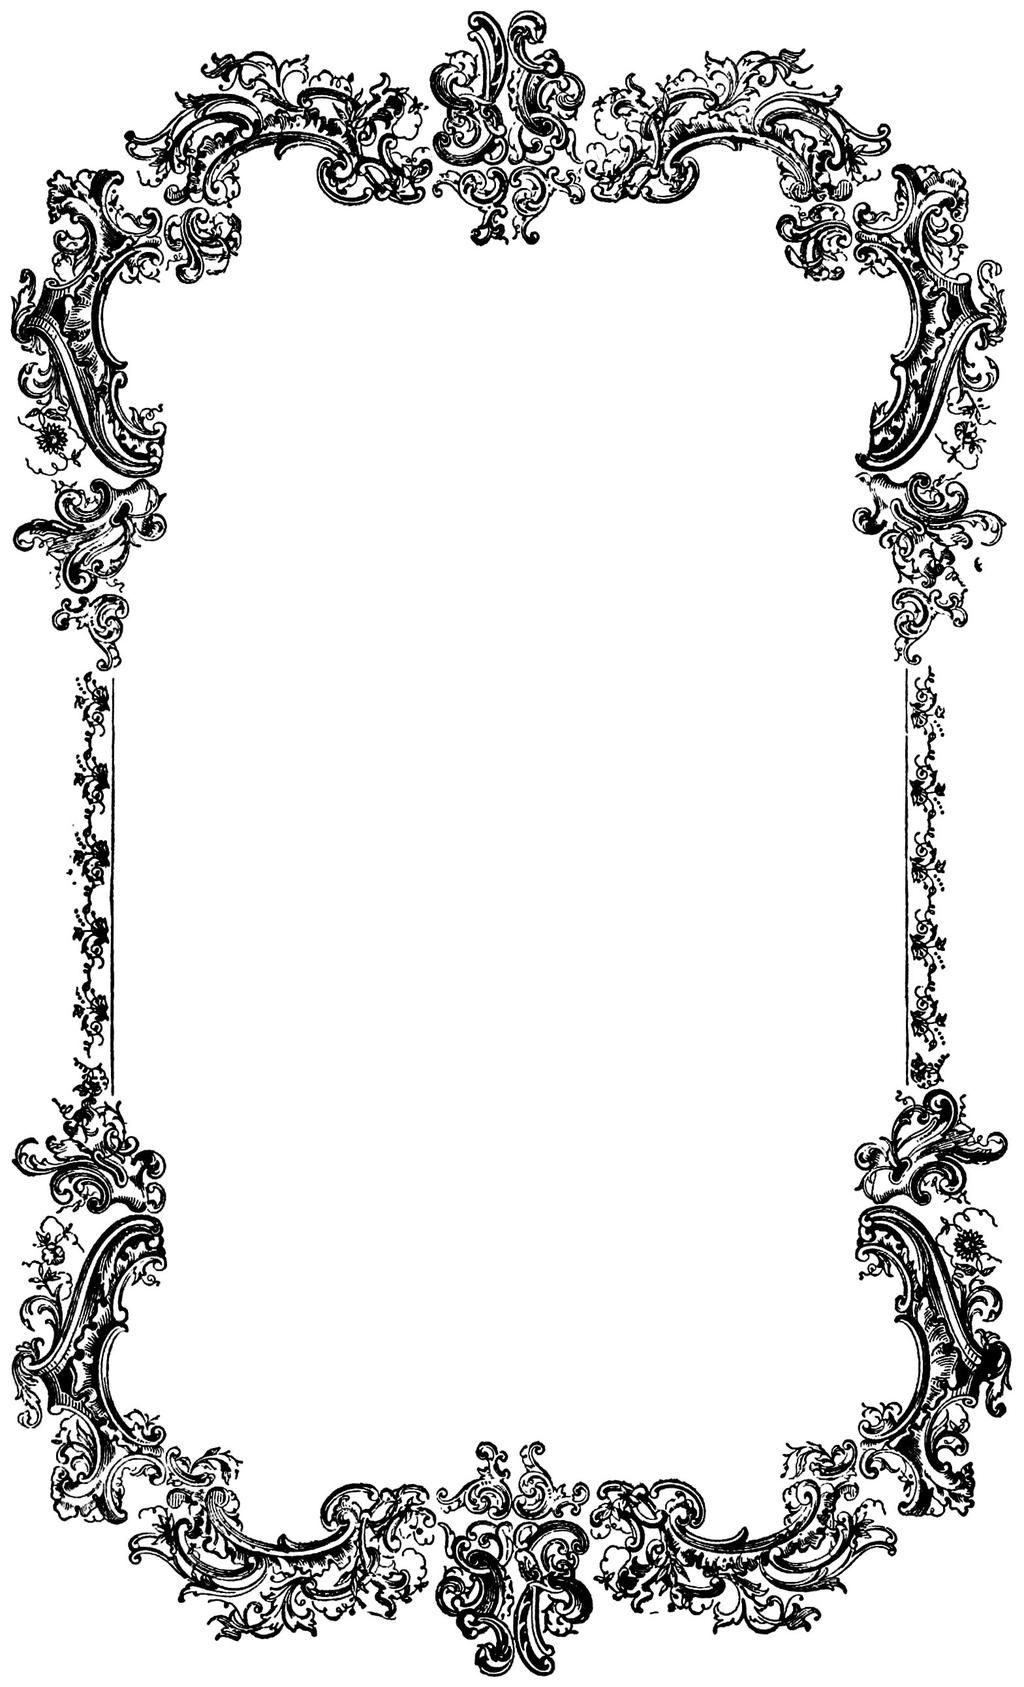 Vintage border clipart free clip art black and white library Vintage Borders Clipart Vgosn Border Frame - Clipart1001 ... clip art black and white library